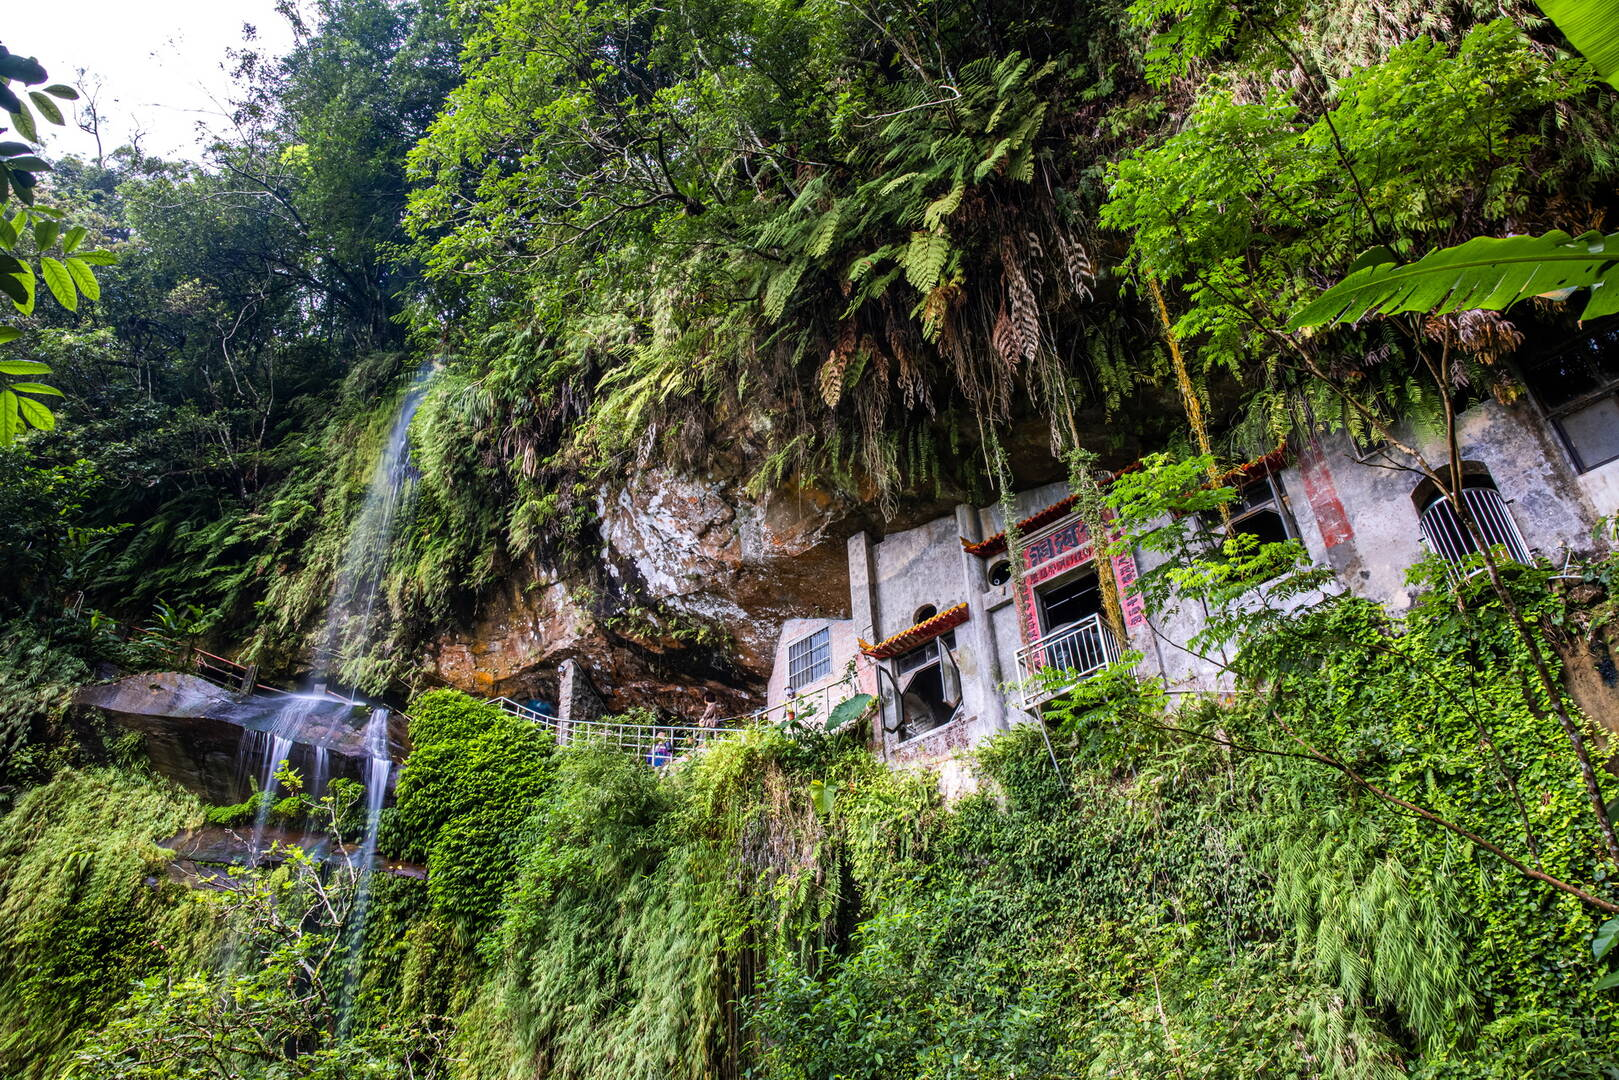 The Yinhe Cave Hiking Trail